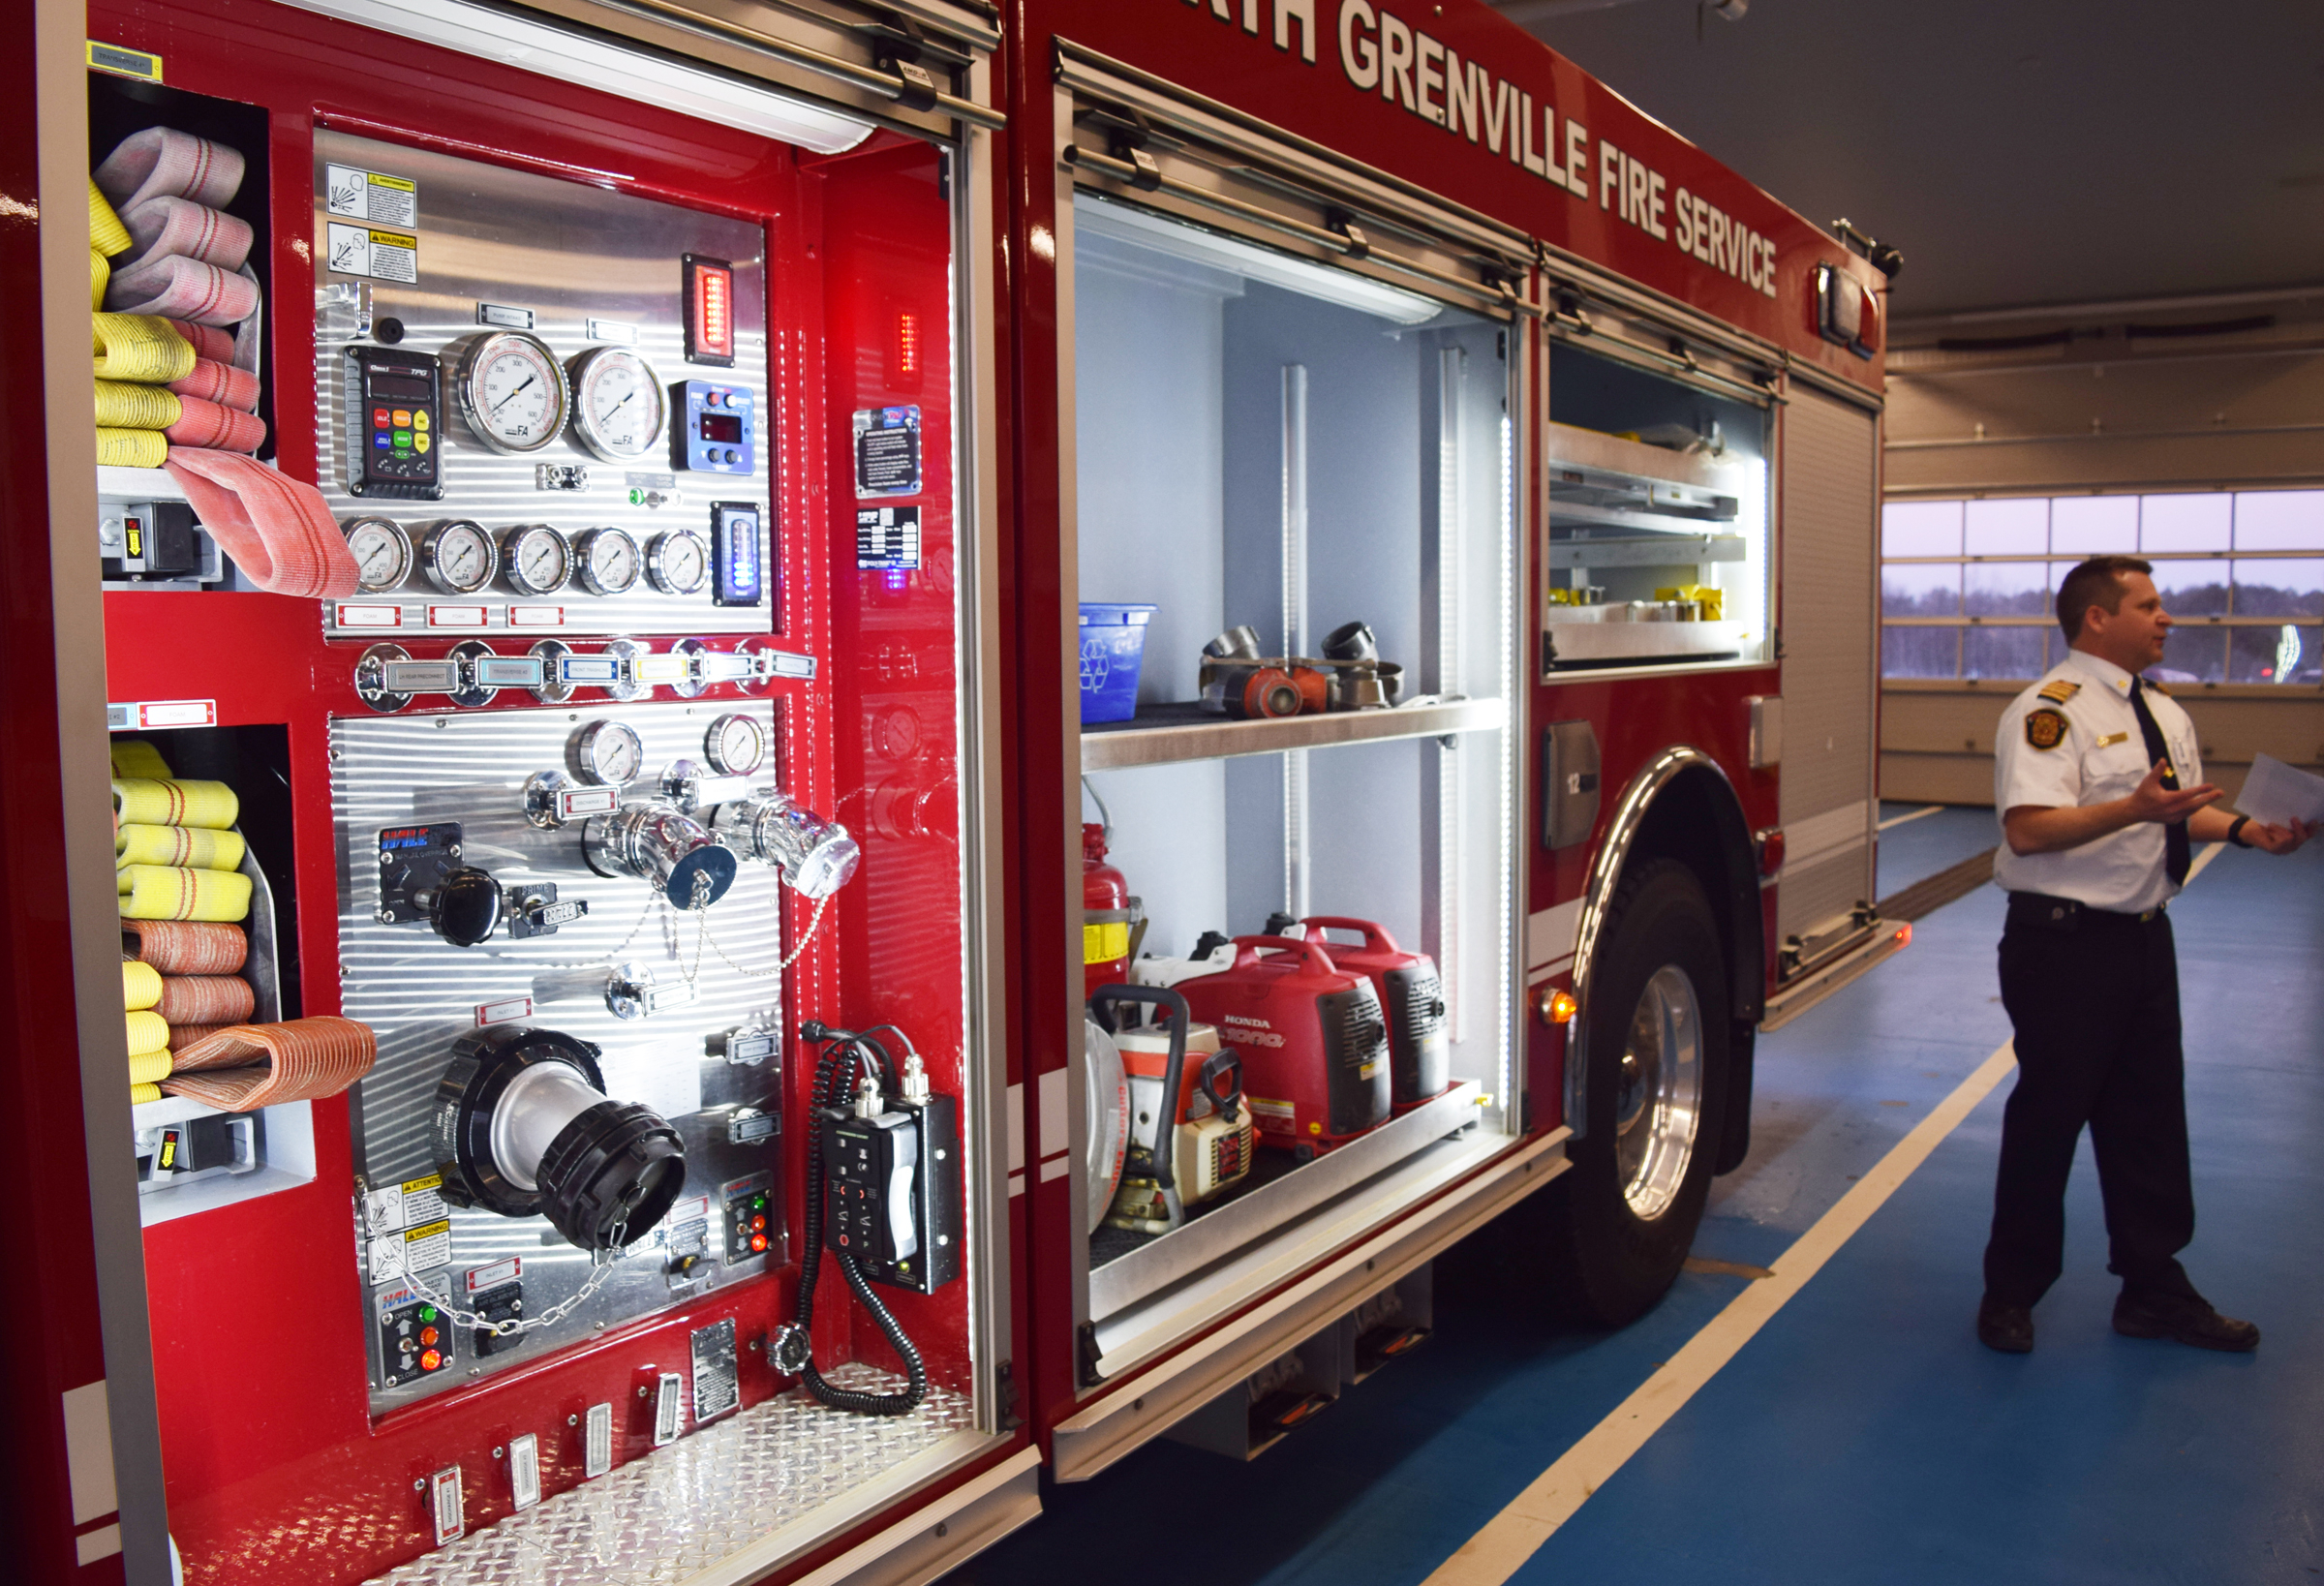 North Grenville Fire Service Receives New Custom-Made Fire